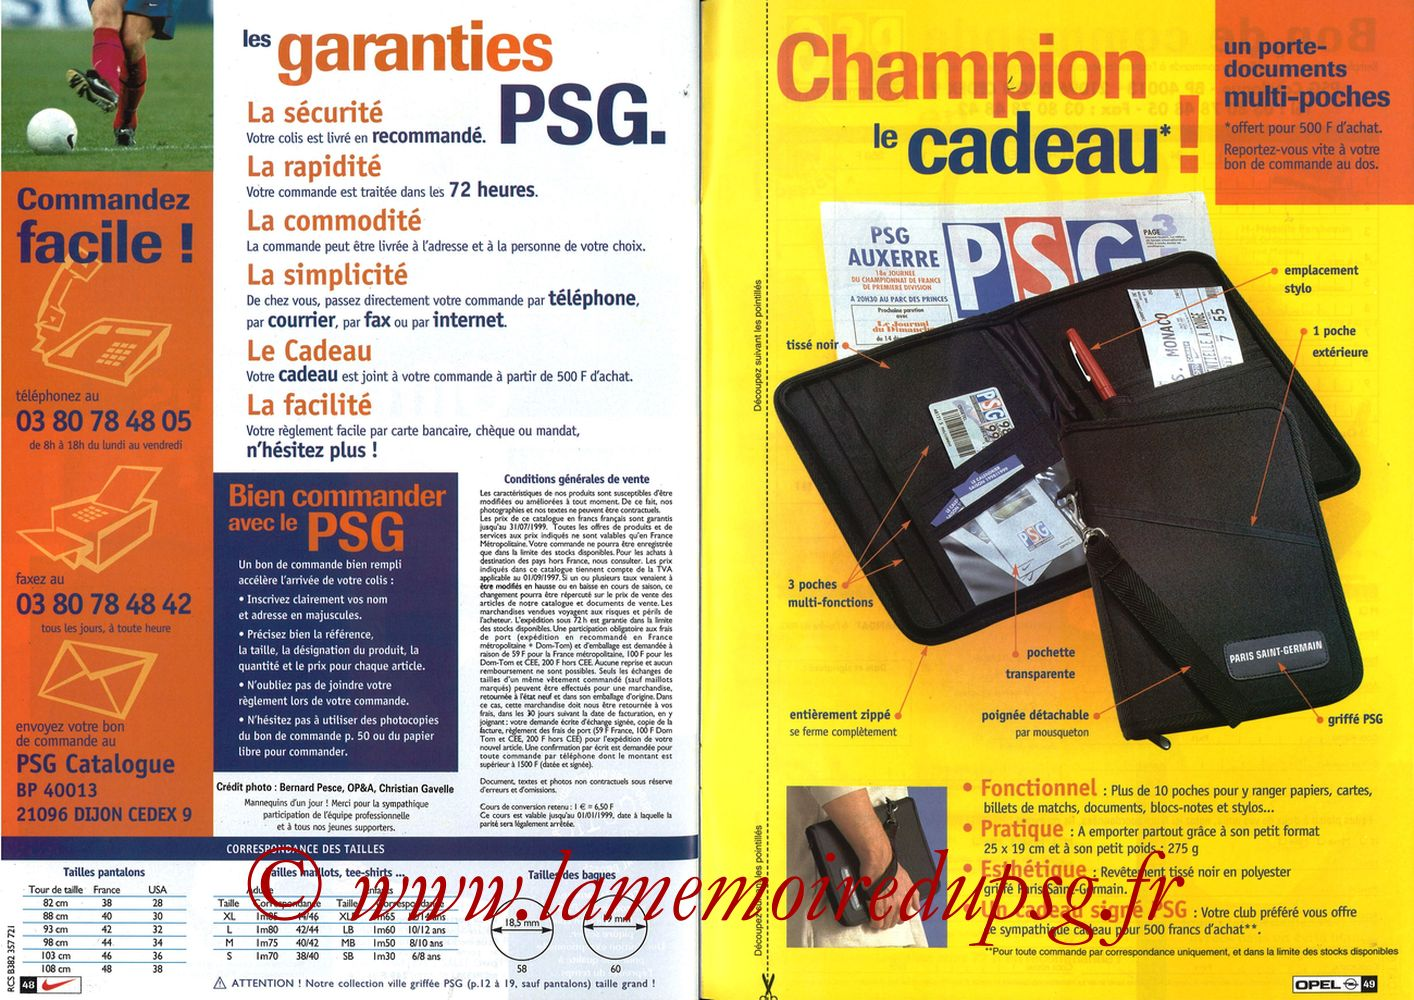 Catalogue PSG - 1998-99 - Pages 48 et 49